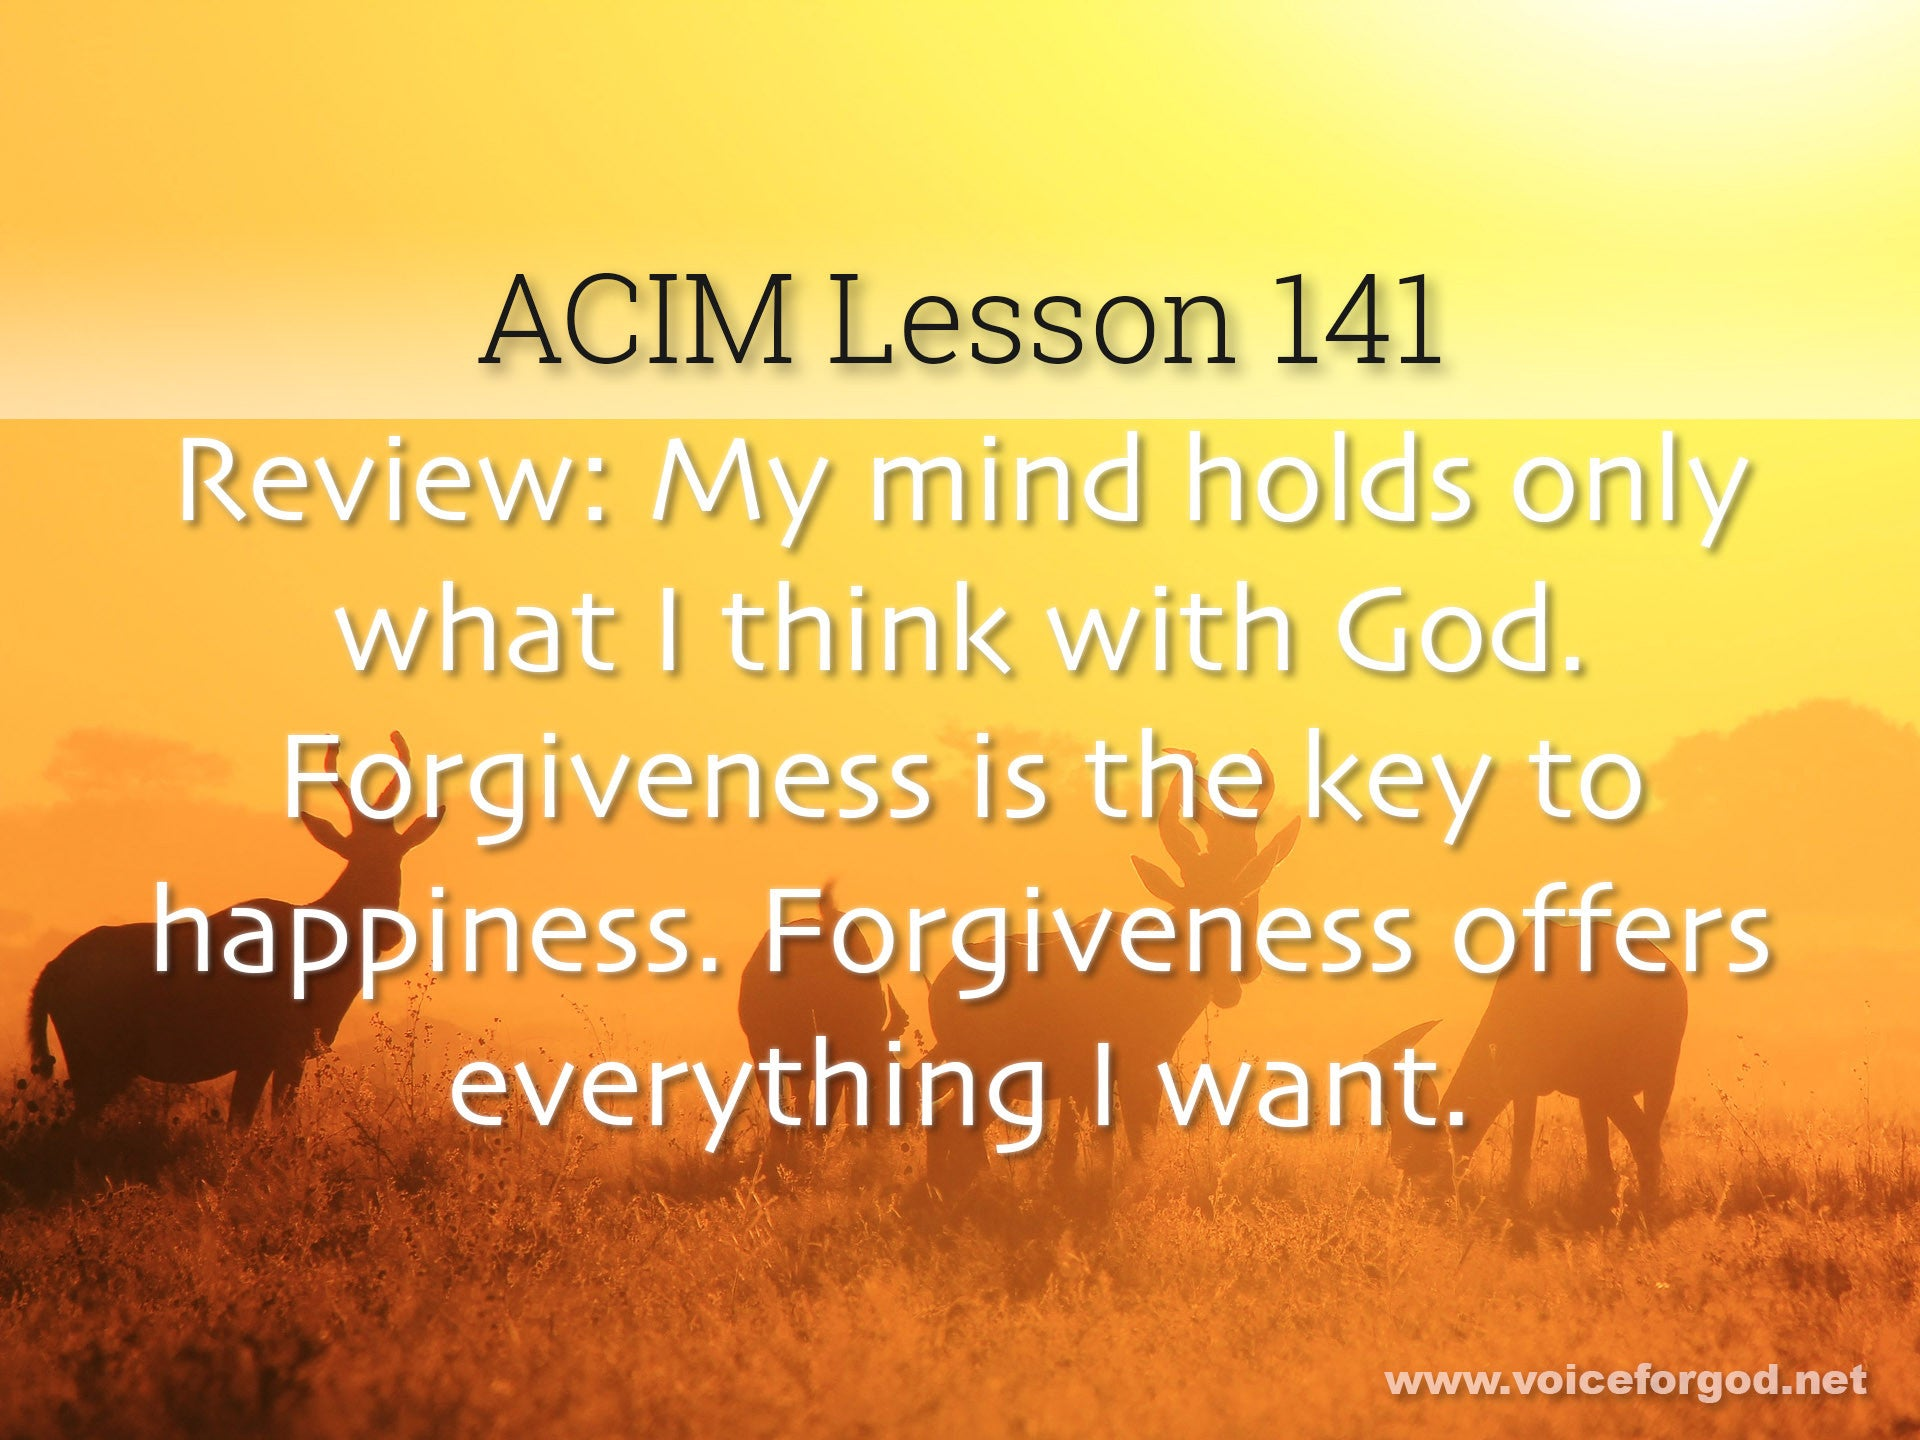 ACIM Lesson 141 - A Course in Miracles Workbook Lesson 141